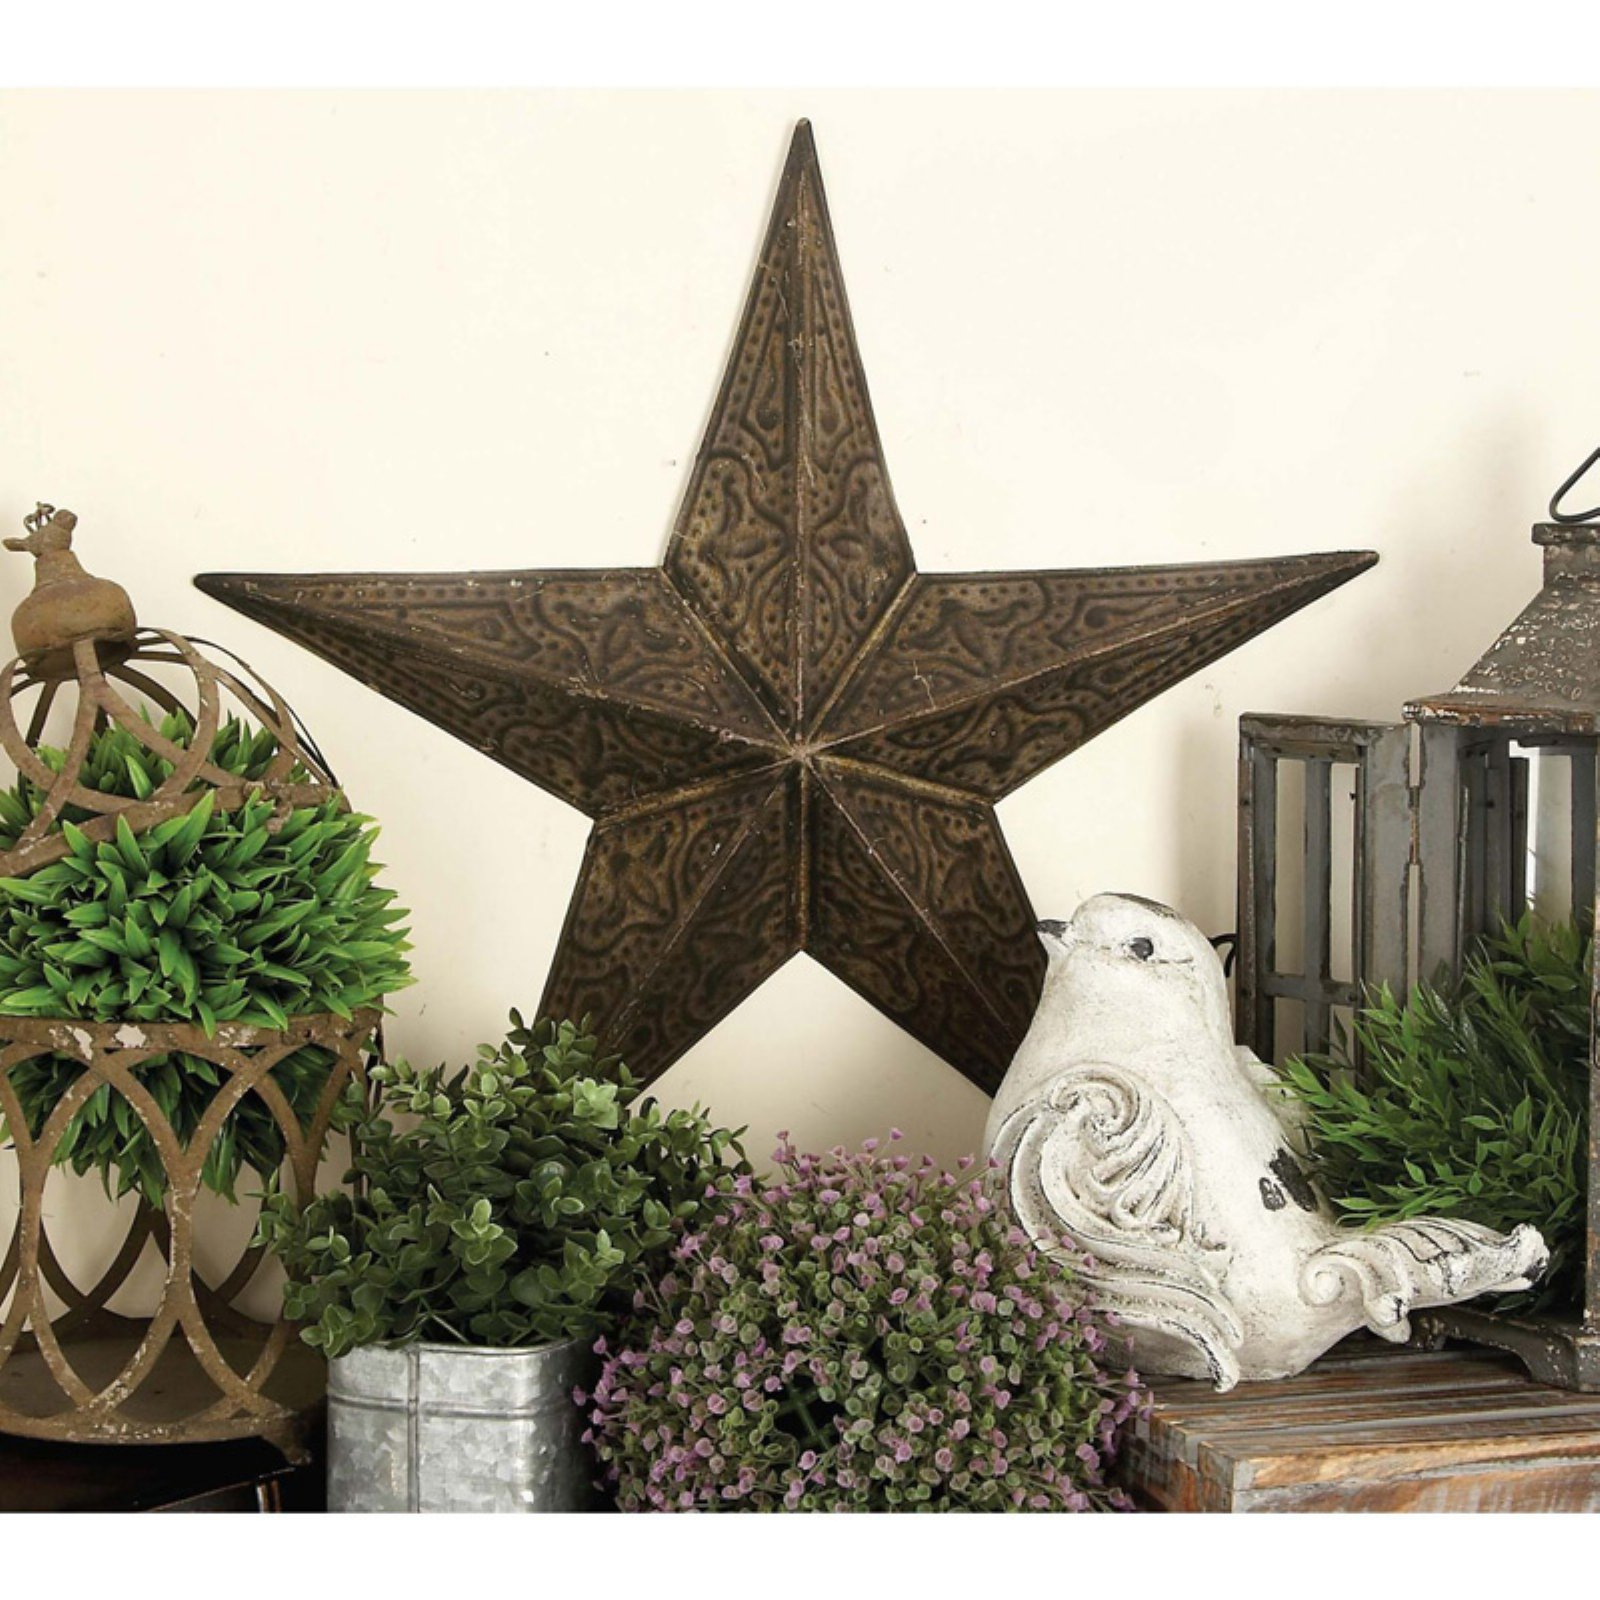 Decor Regarding Most Popular 3 Piece Star Wall Decor Sets (View 8 of 20)